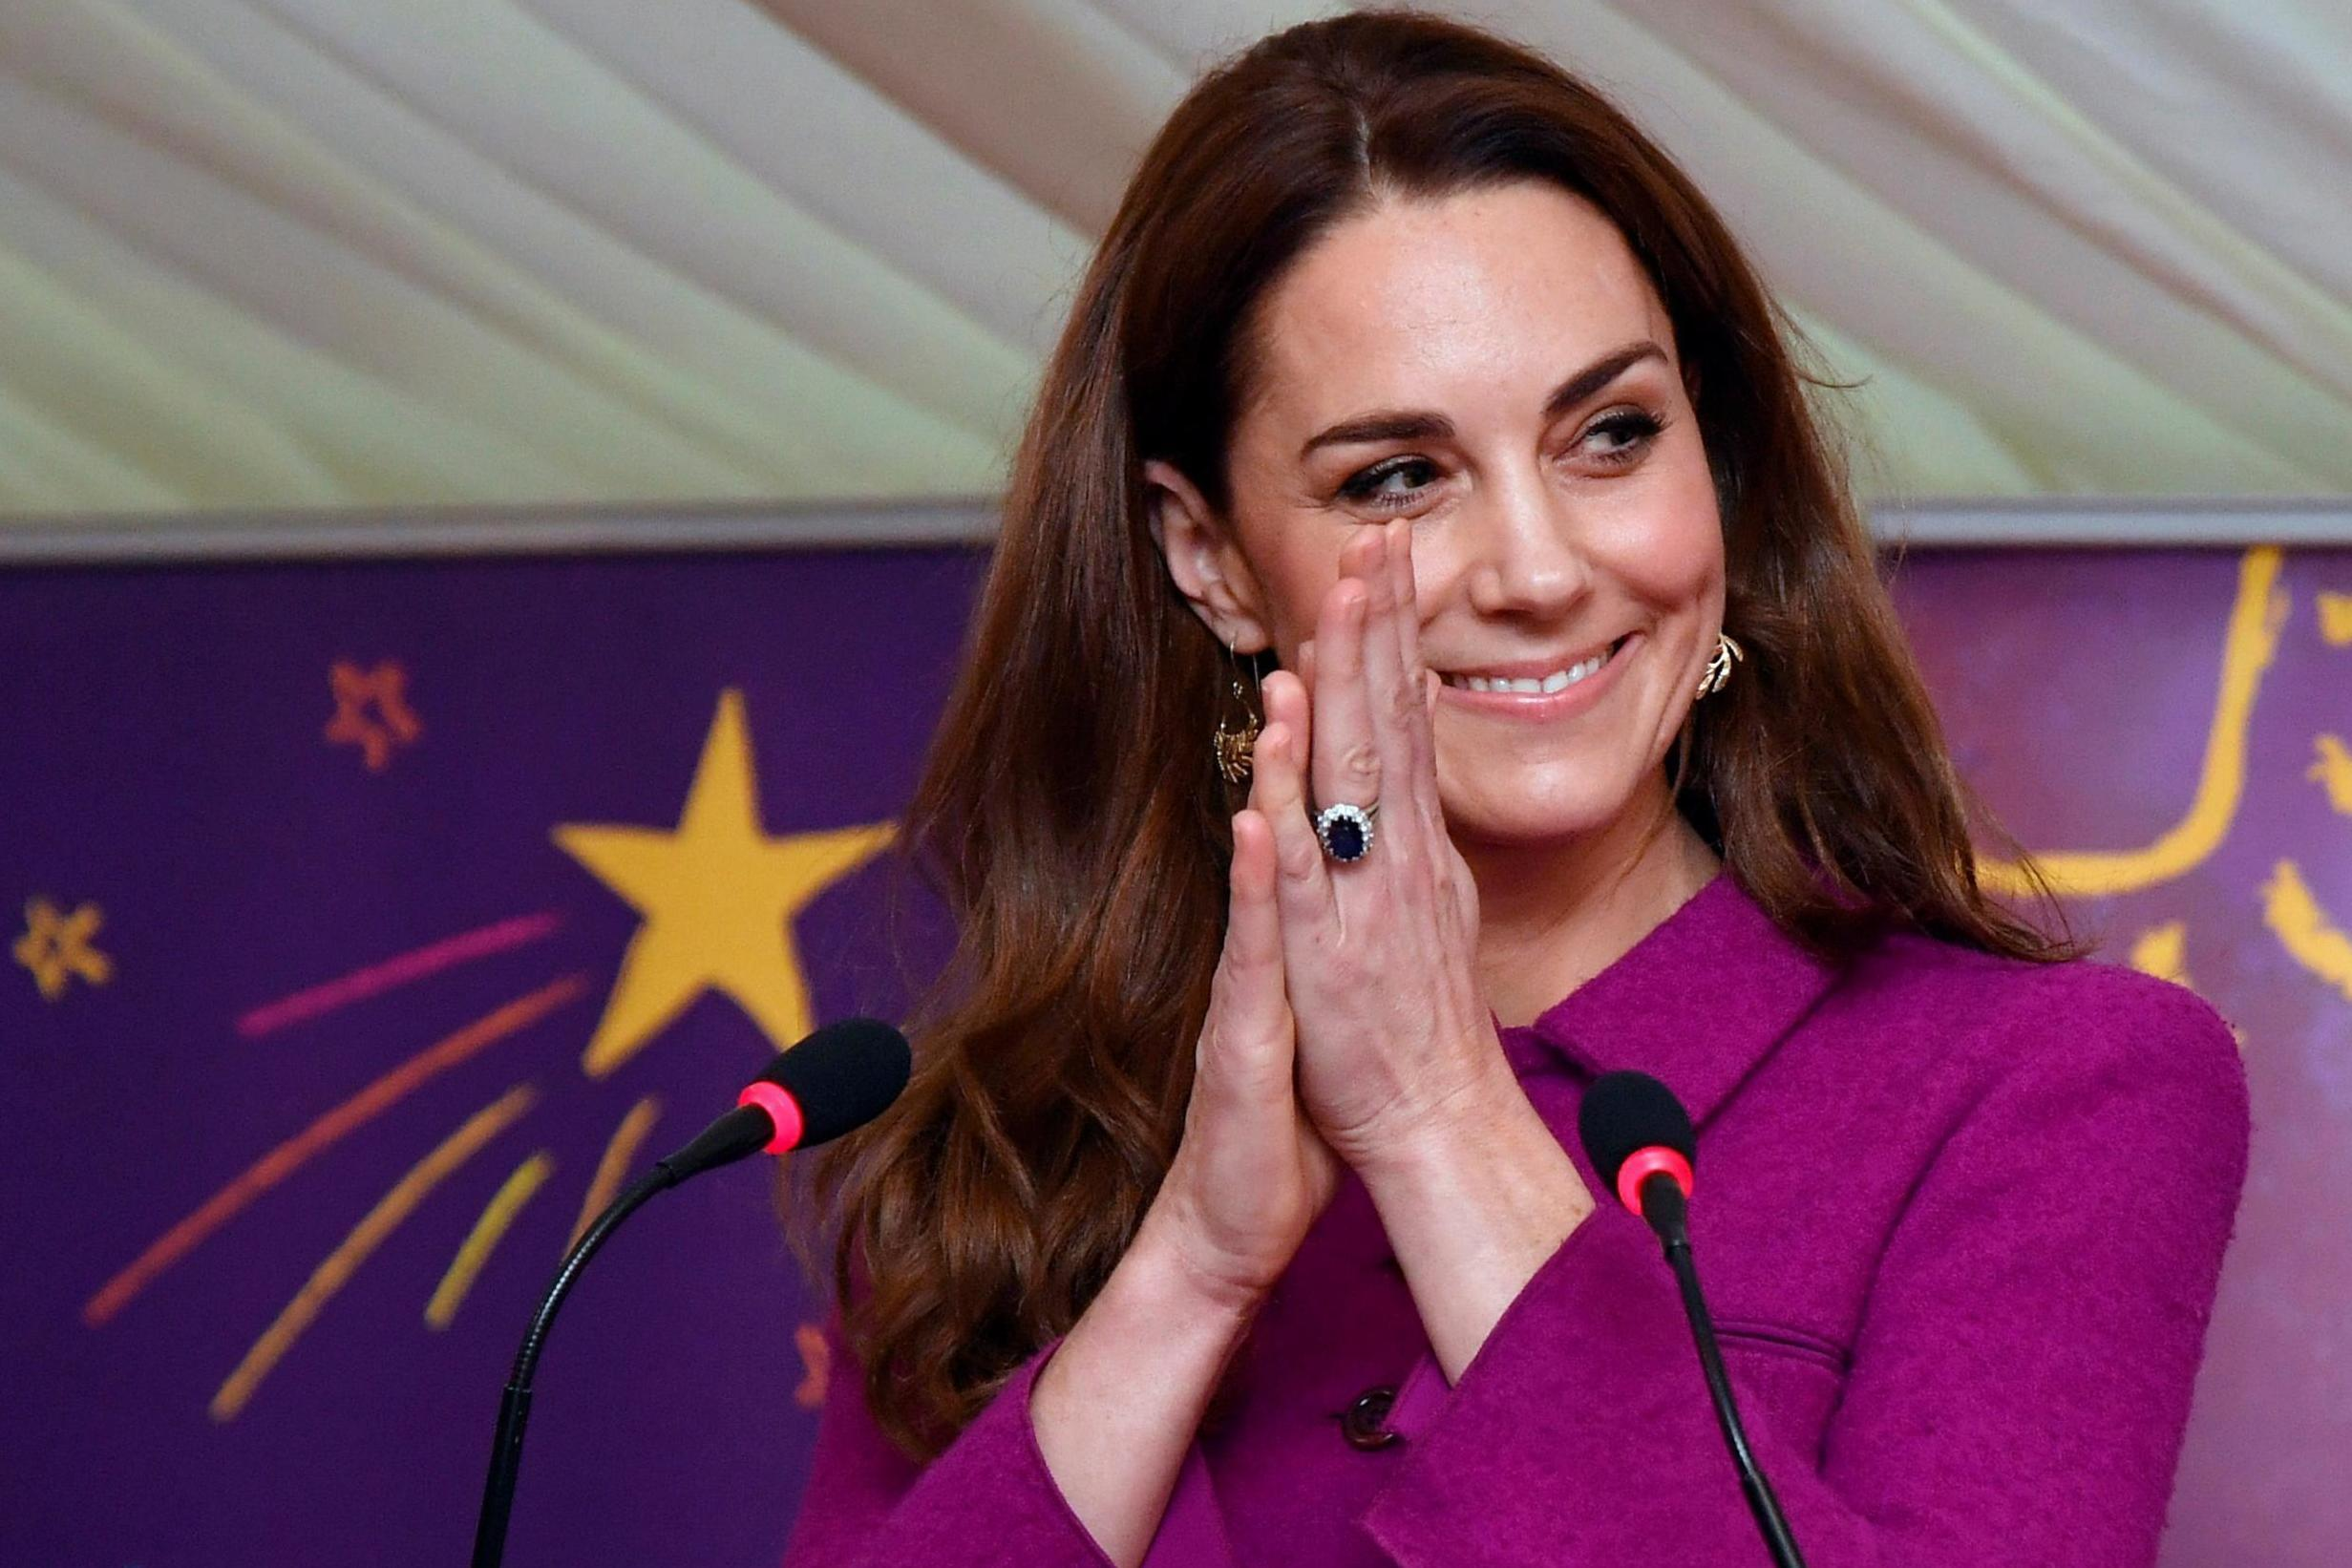 kate middleton removes engagement ring while self quarantining amid coronavirus pandemic the independent the independent kate middleton removes engagement ring